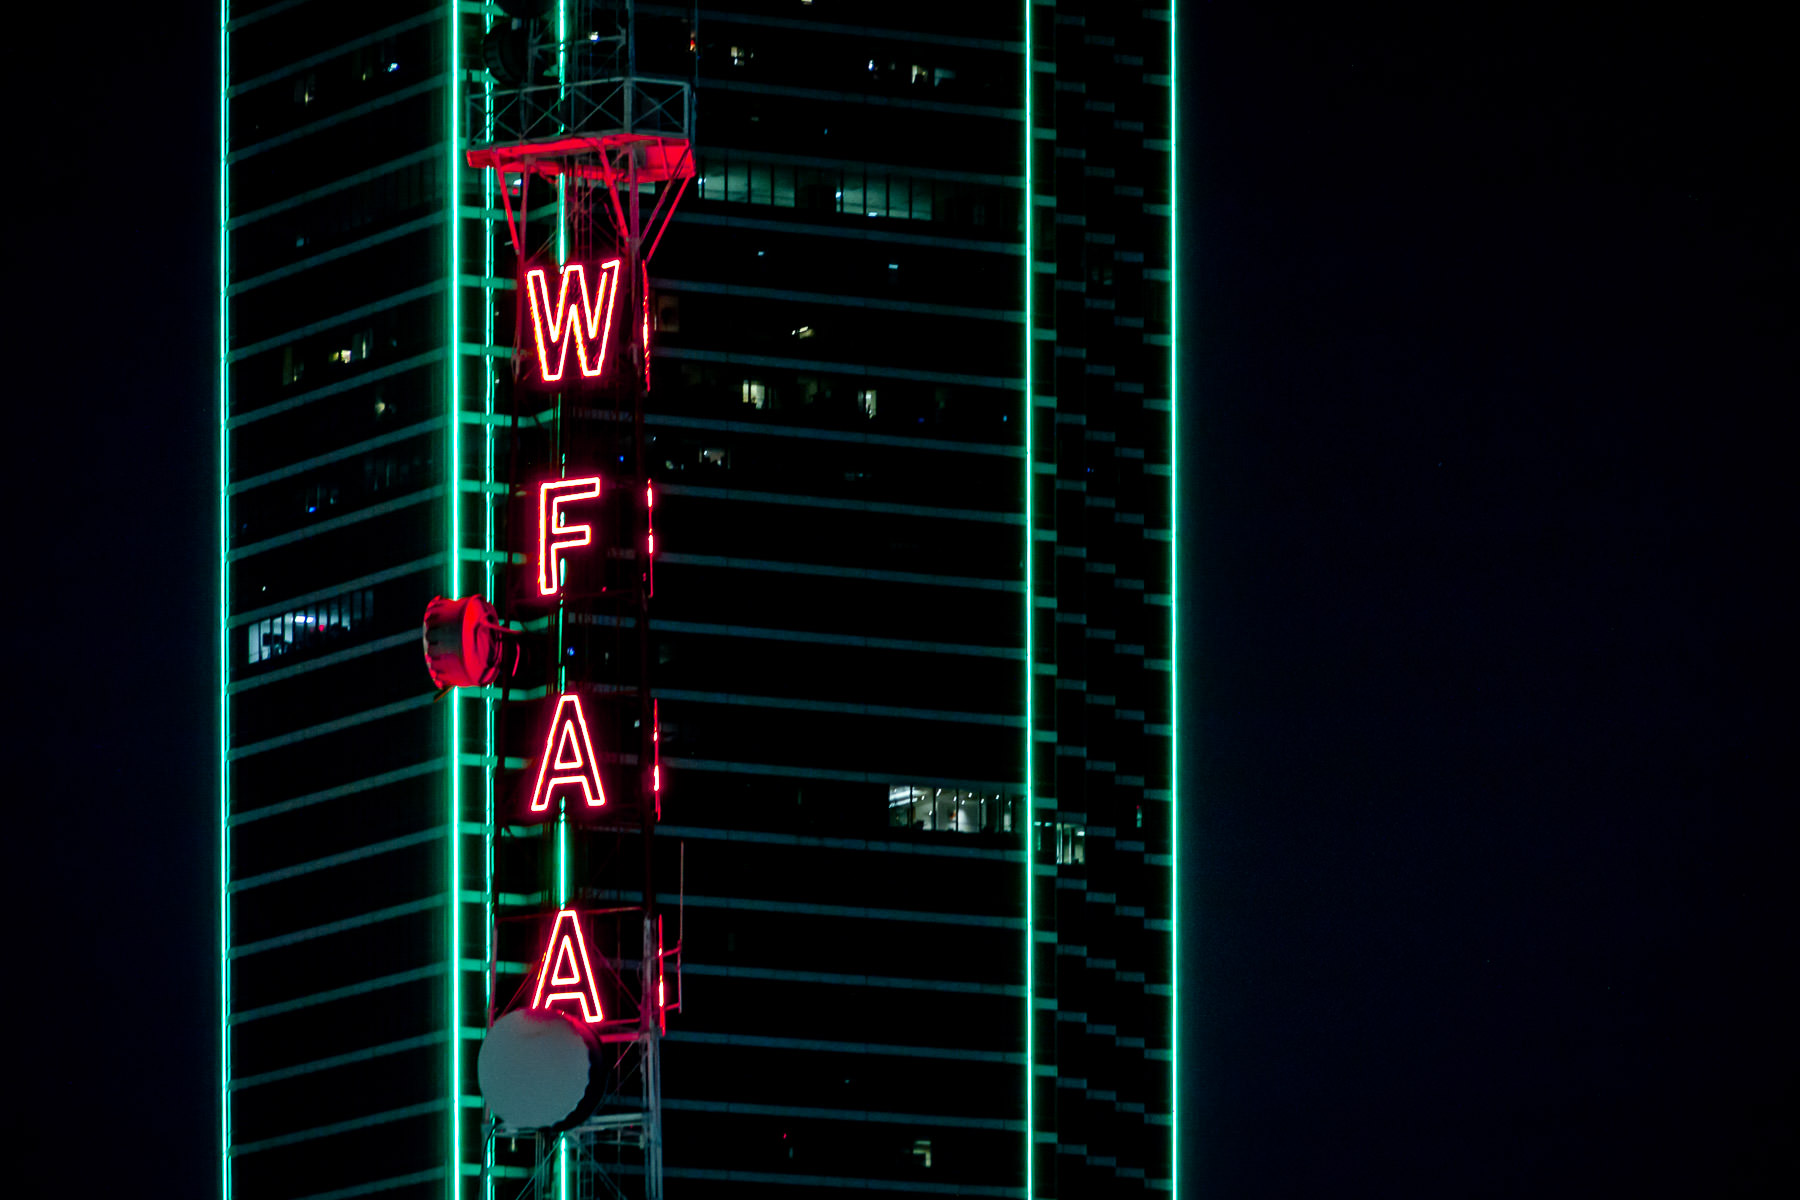 A broadcast tower at WFAA glows in Dallas' night sky near Bank of America Plaza.